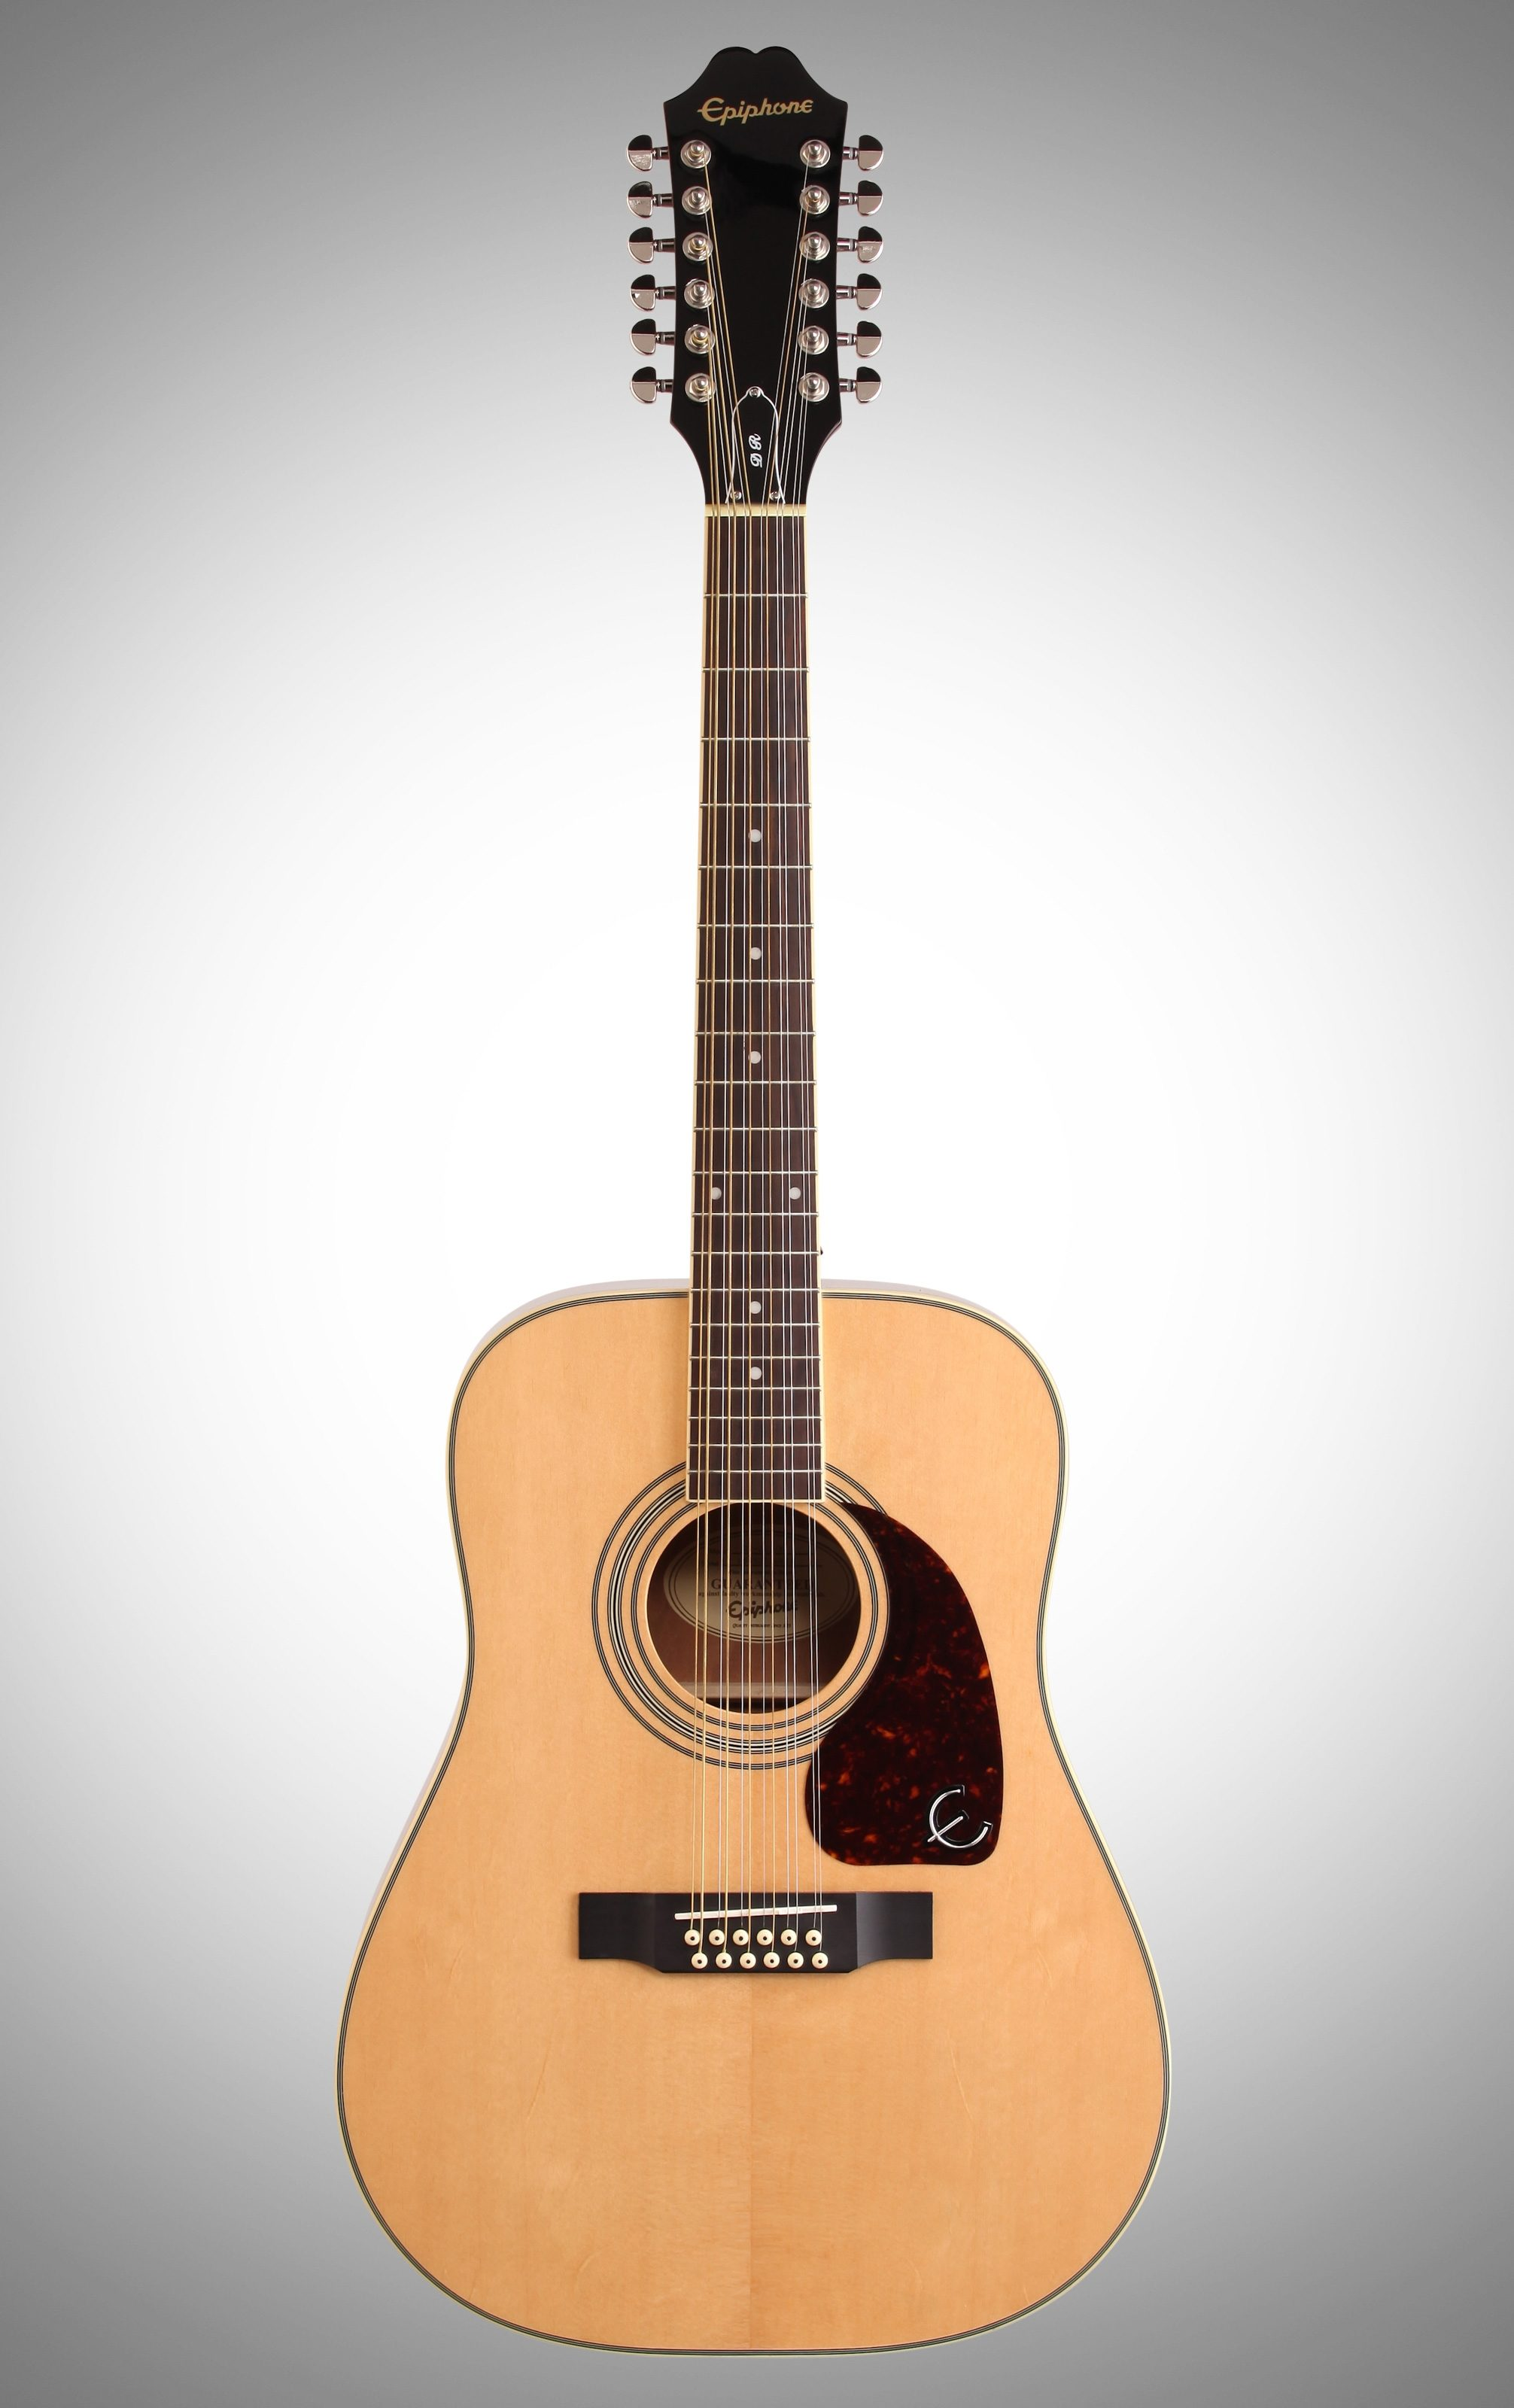 Epiphone DR-212 12-String Acoustic Guitar | zZounds